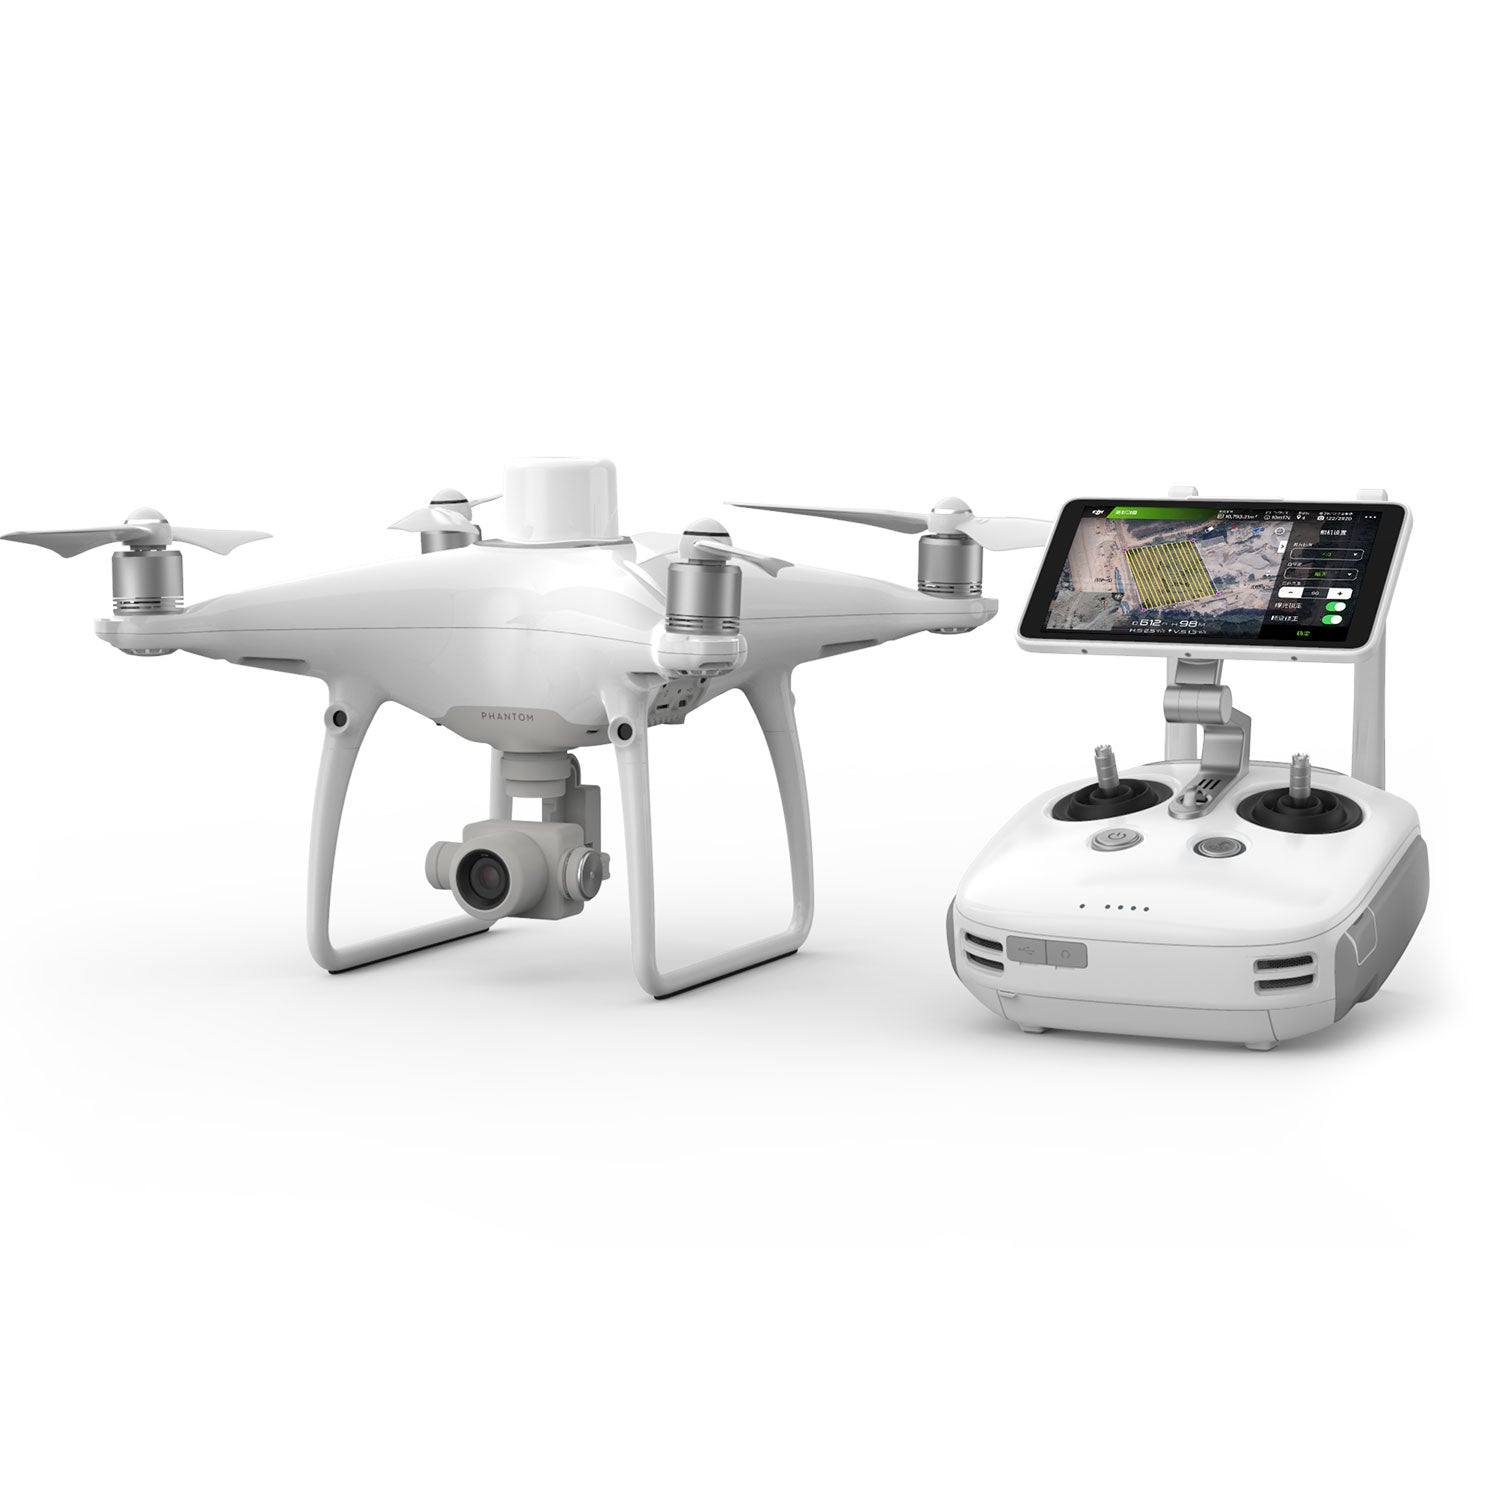 DJI Phantom 4 RTK with D-RTK 2 GNSS Mobile Station Combo